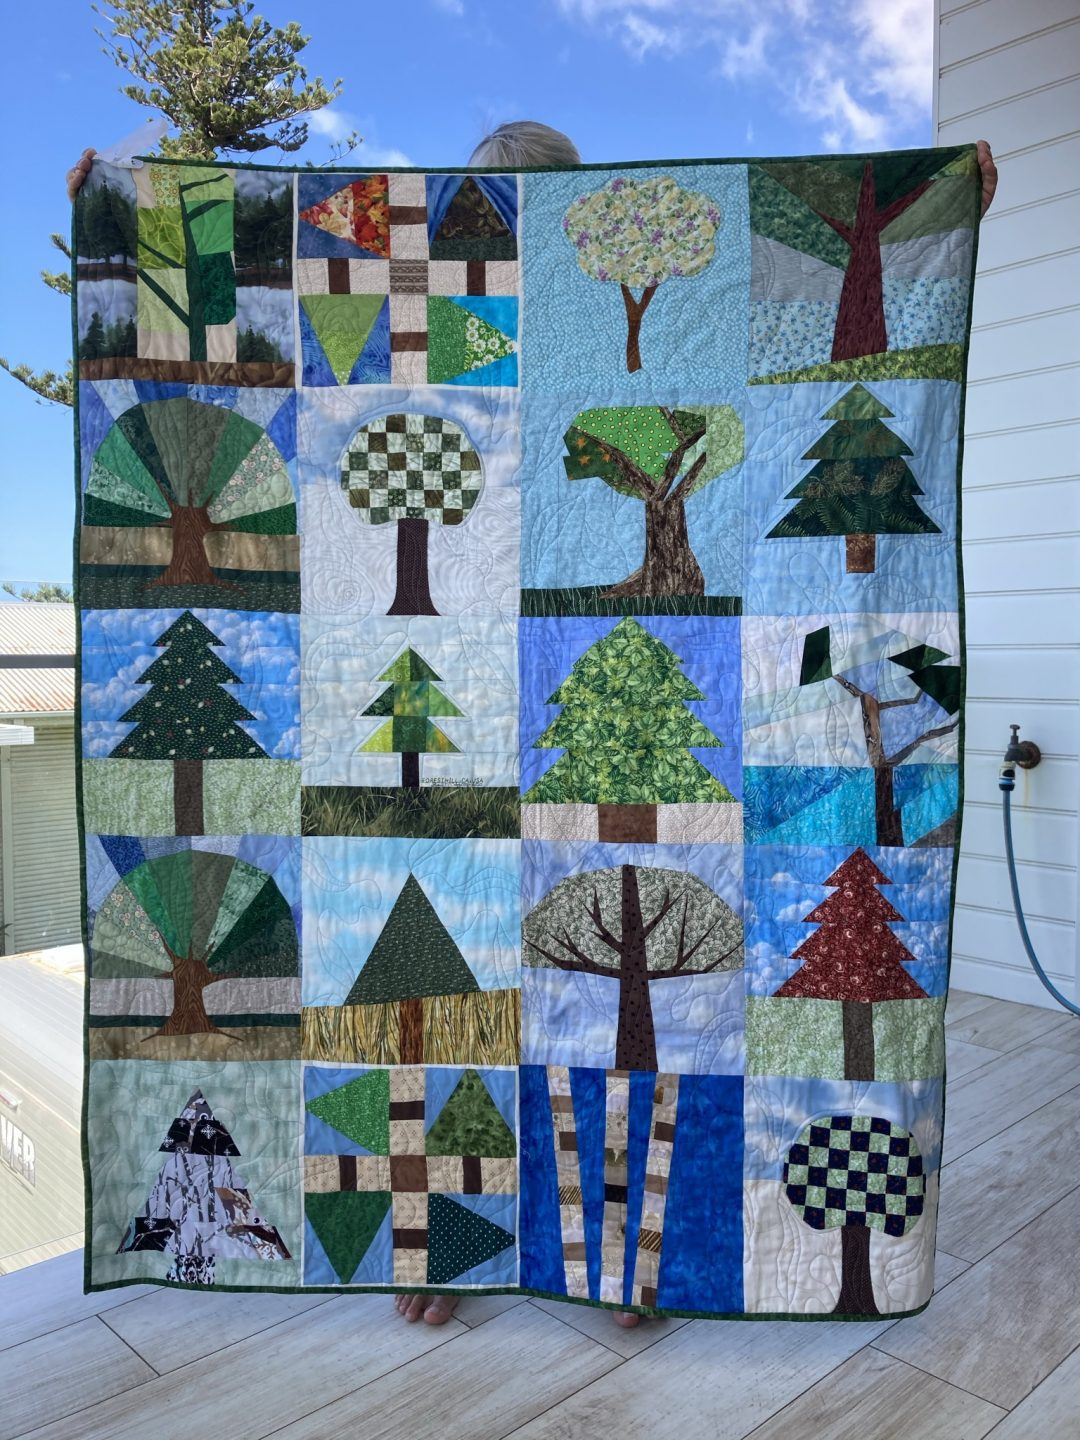 A full quilt being held up. Each panel shows a different tree in a different season. Colours are green, blue, red, black and white.